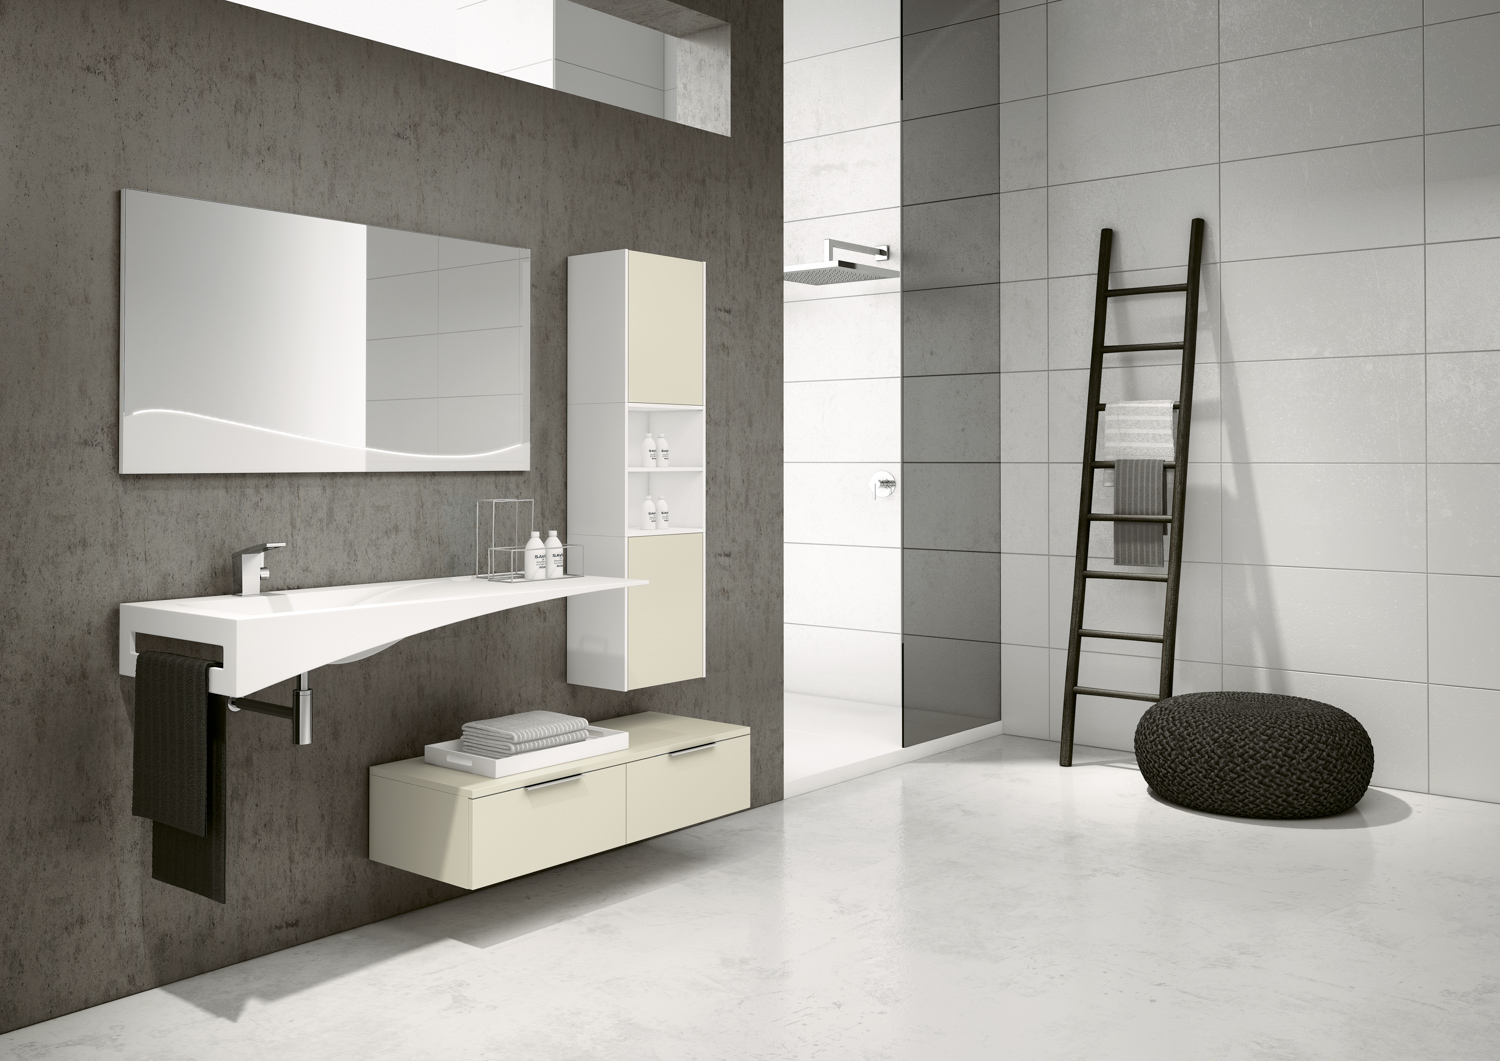 fly bmt arredo bagno